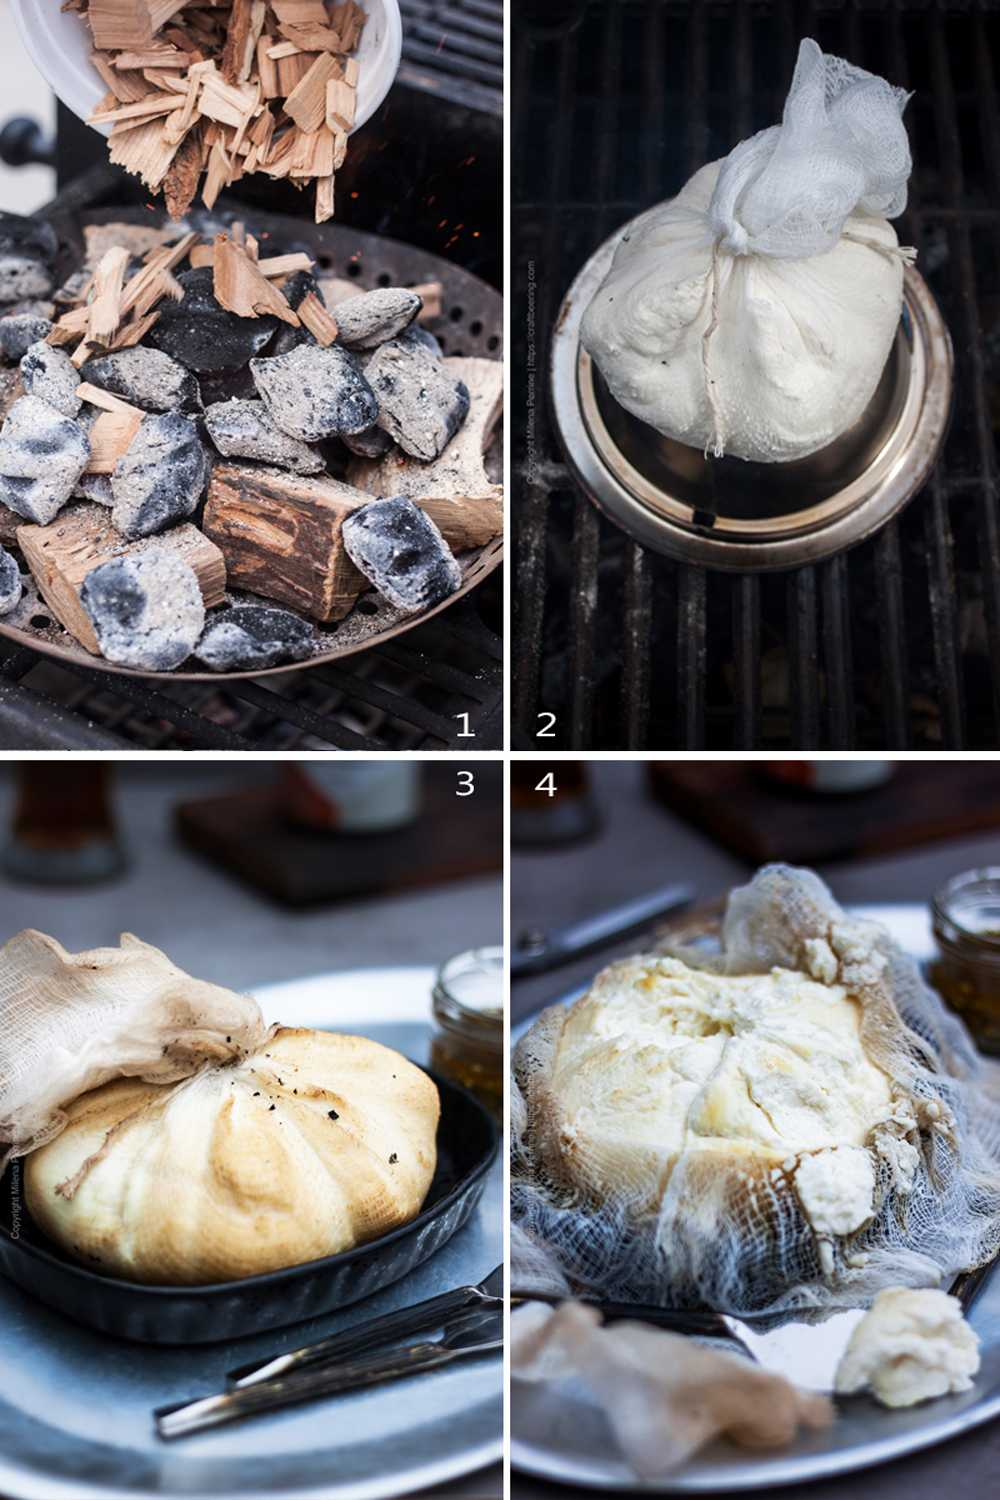 Step by step image grid for how to smoke ricotta cheese.